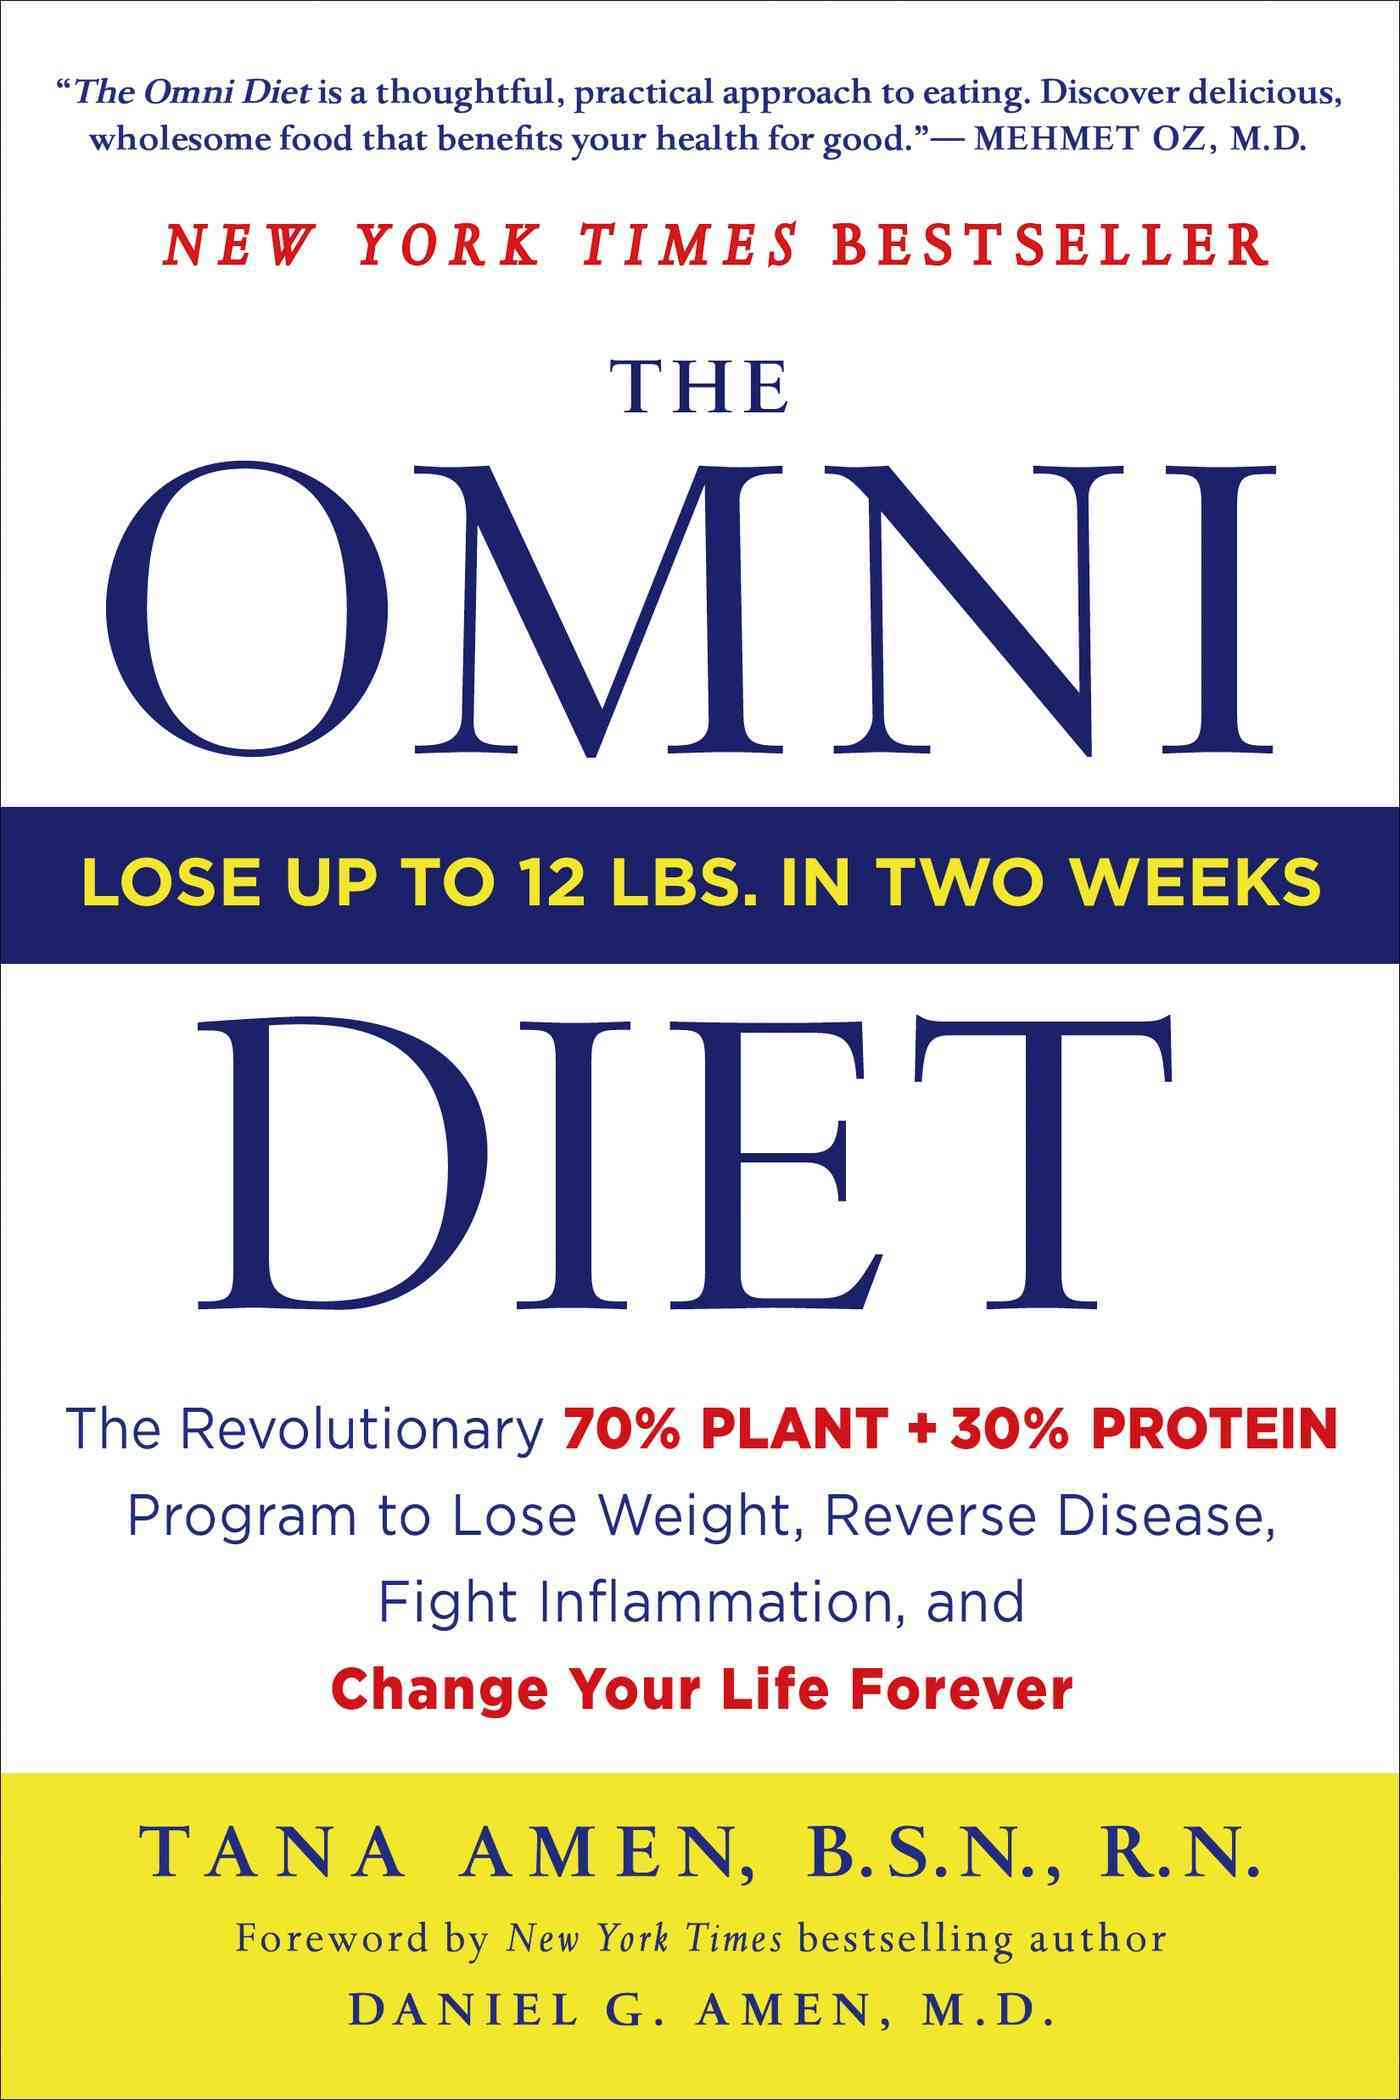 The Omni Diet: The Revolutionary 70% Plant + 30% Protein Program to Lose Weight, Reverse Disease, Fight Inflammat... (Paperback)